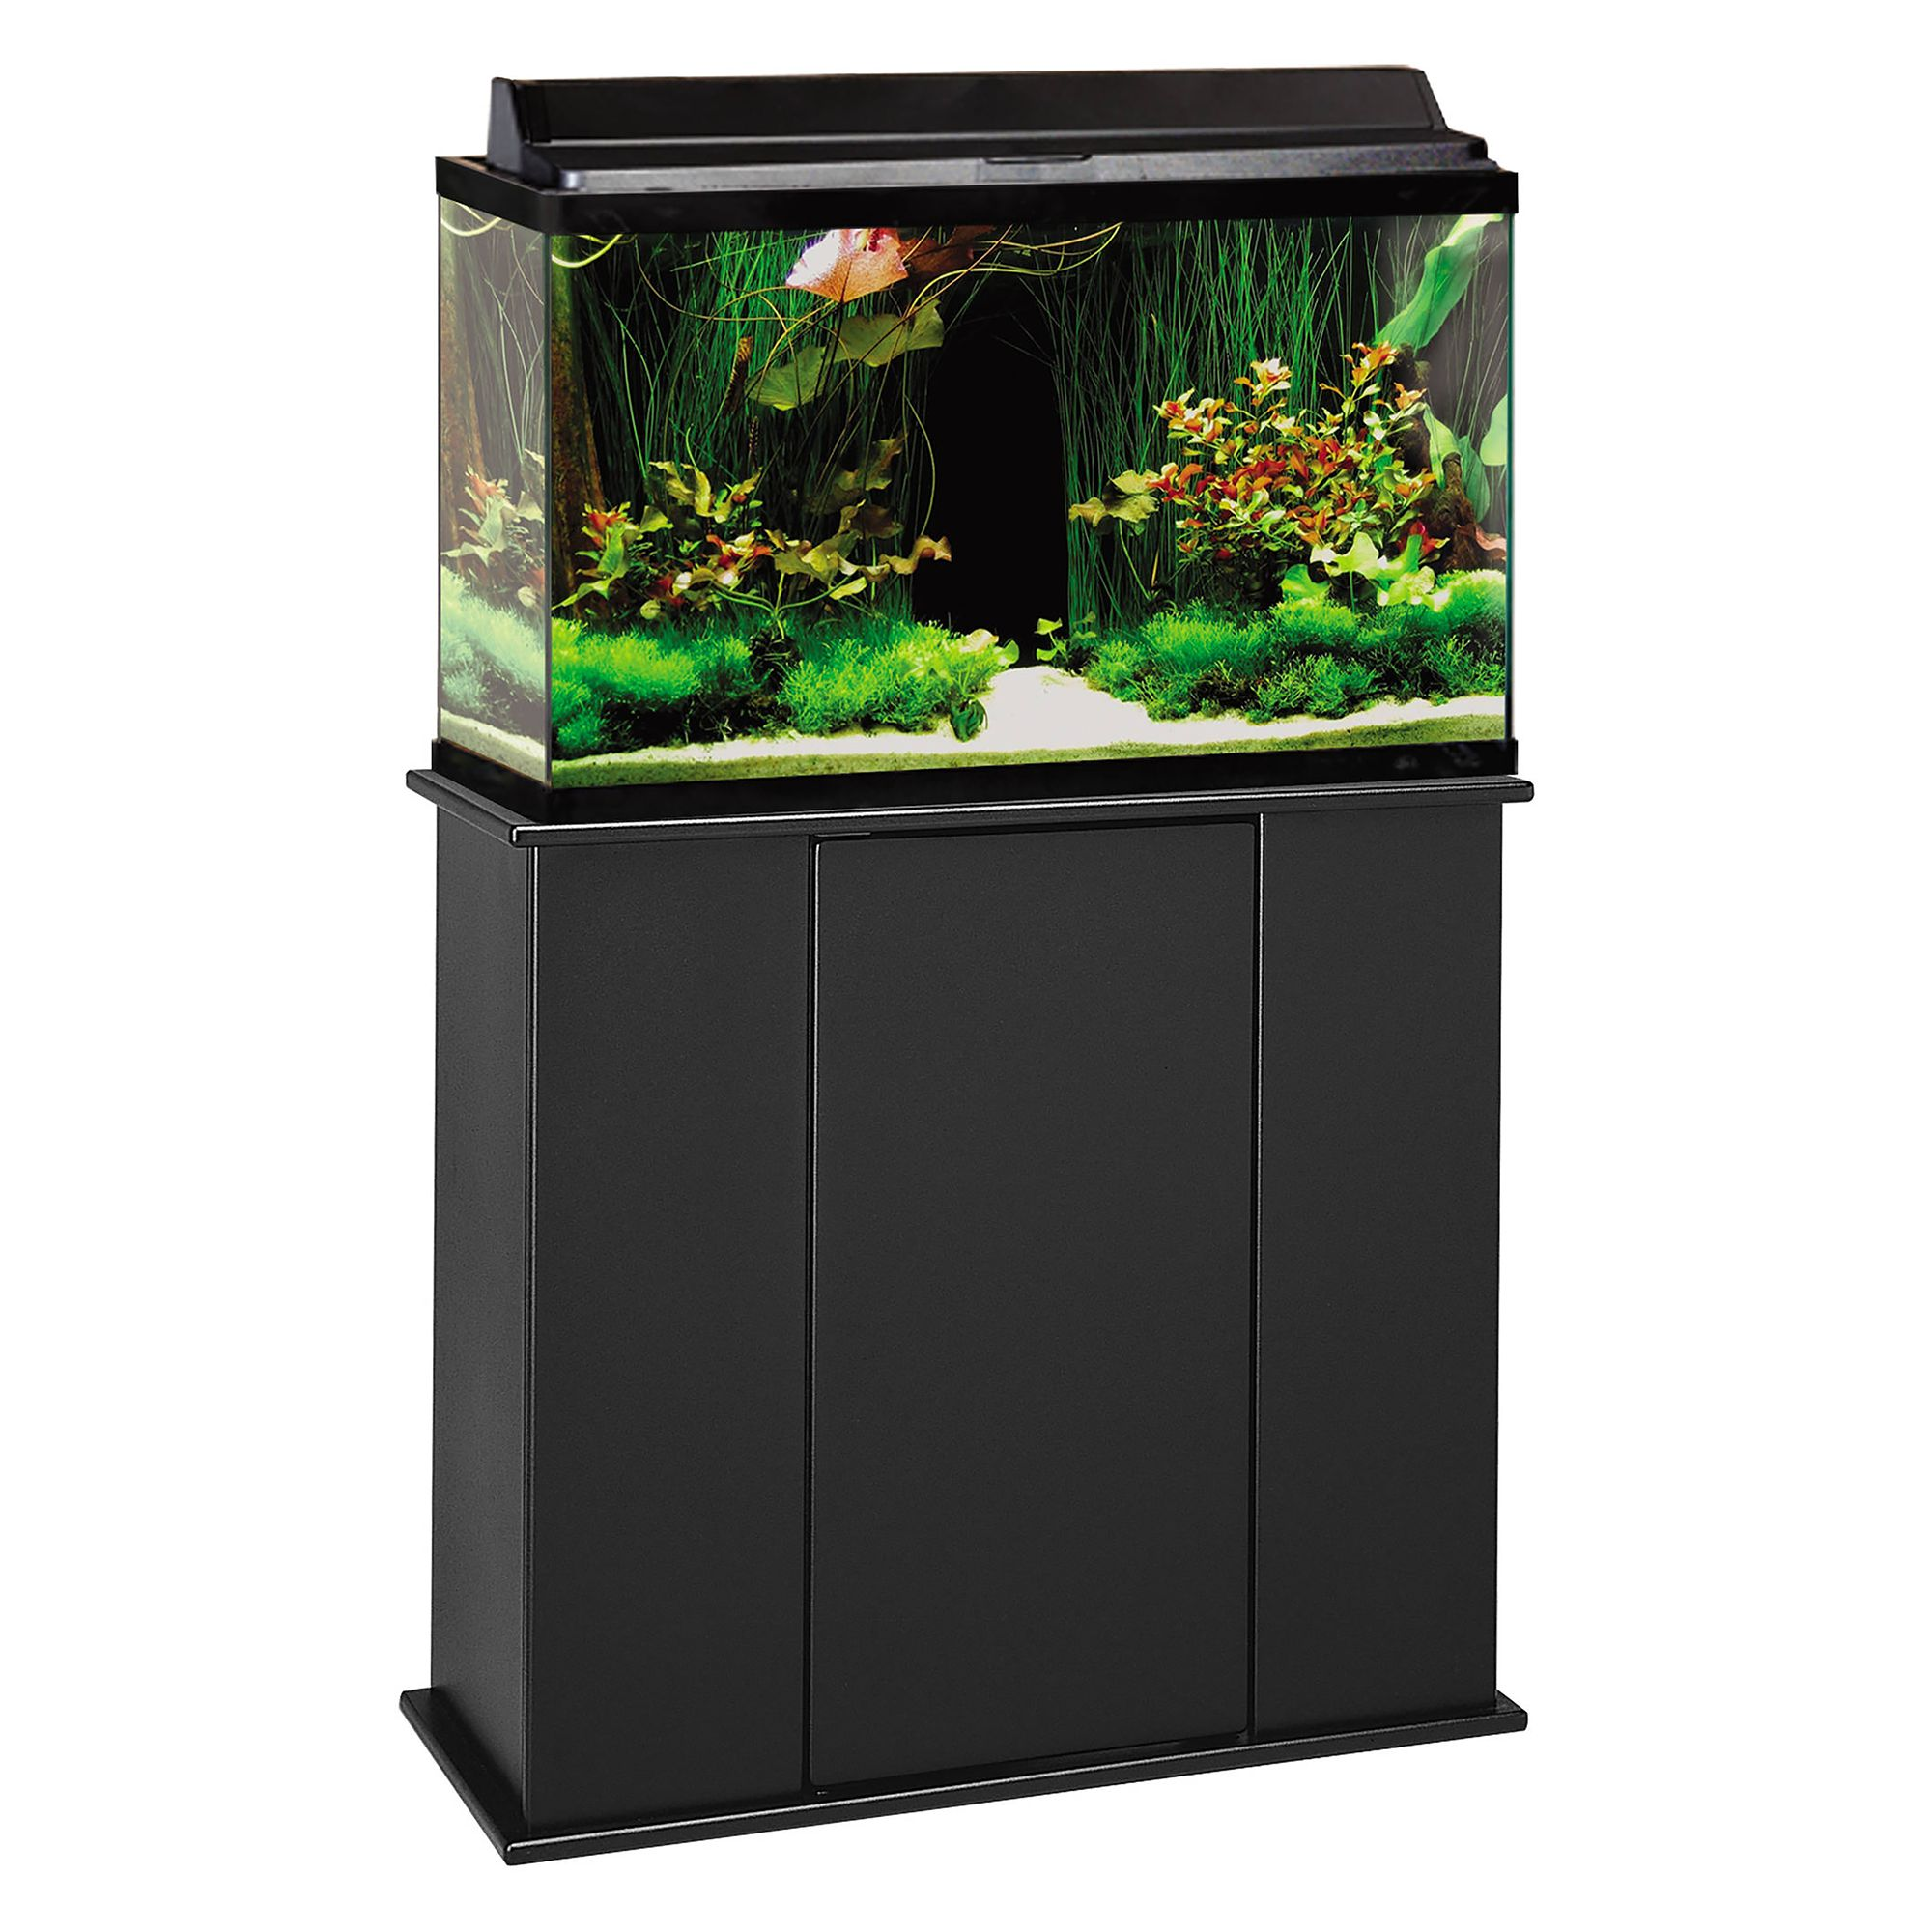 Marco 29 Gallon Upright Aquarium Stand Black